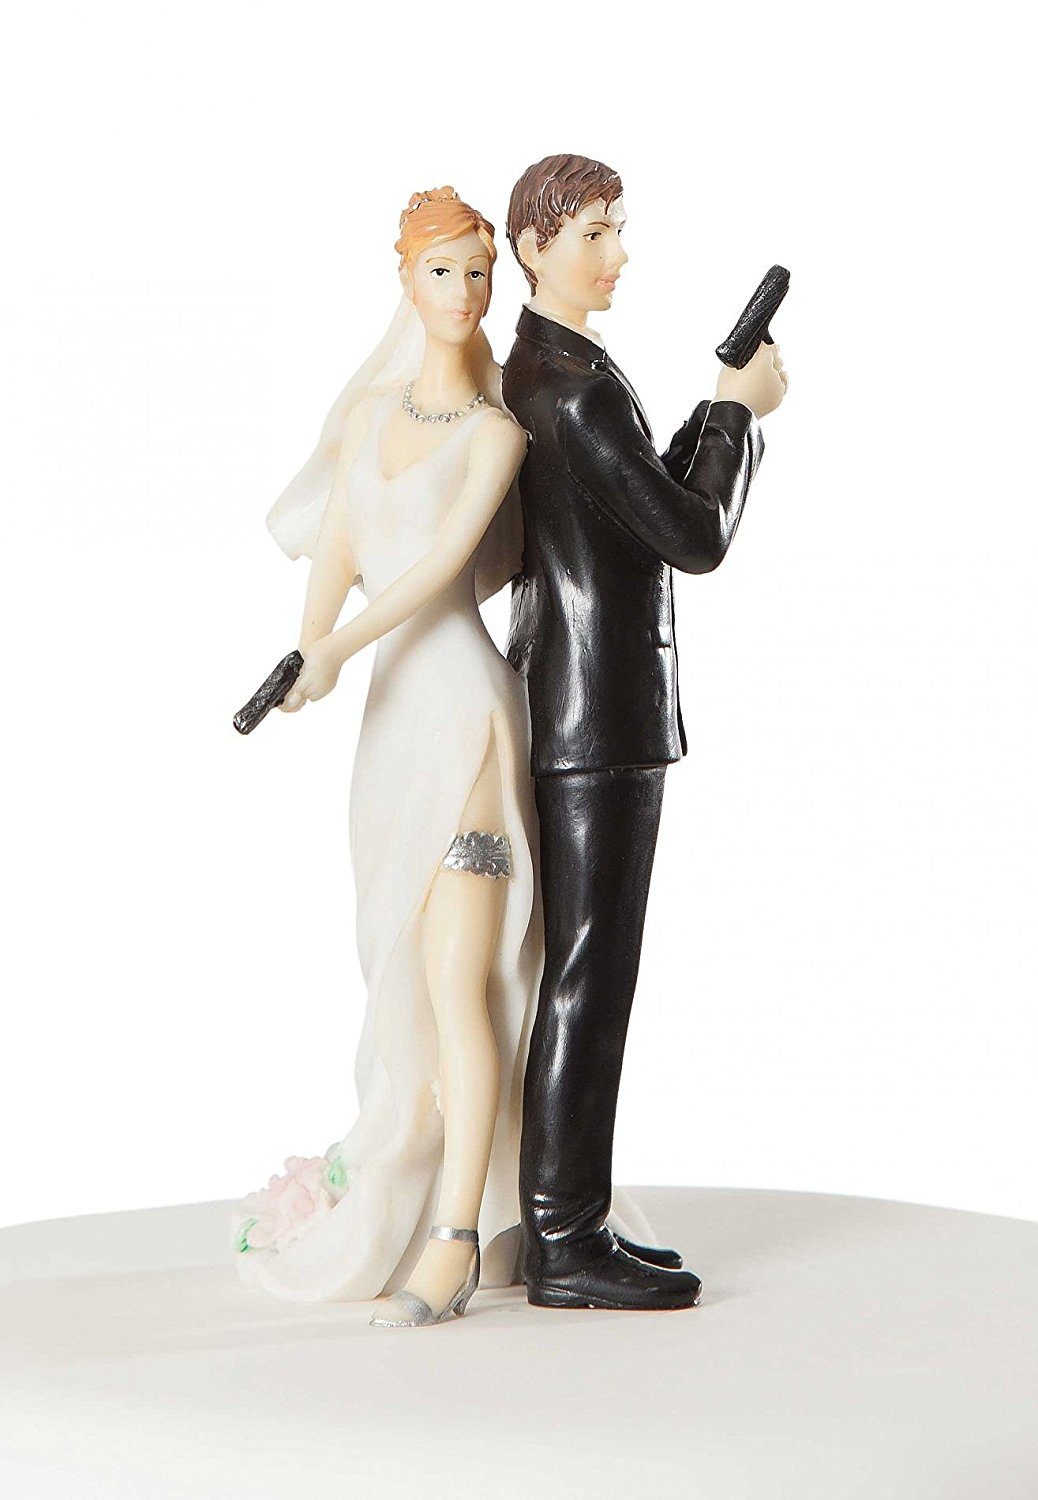 Super sexy spy wedding bride and groom cake topper figurine 1